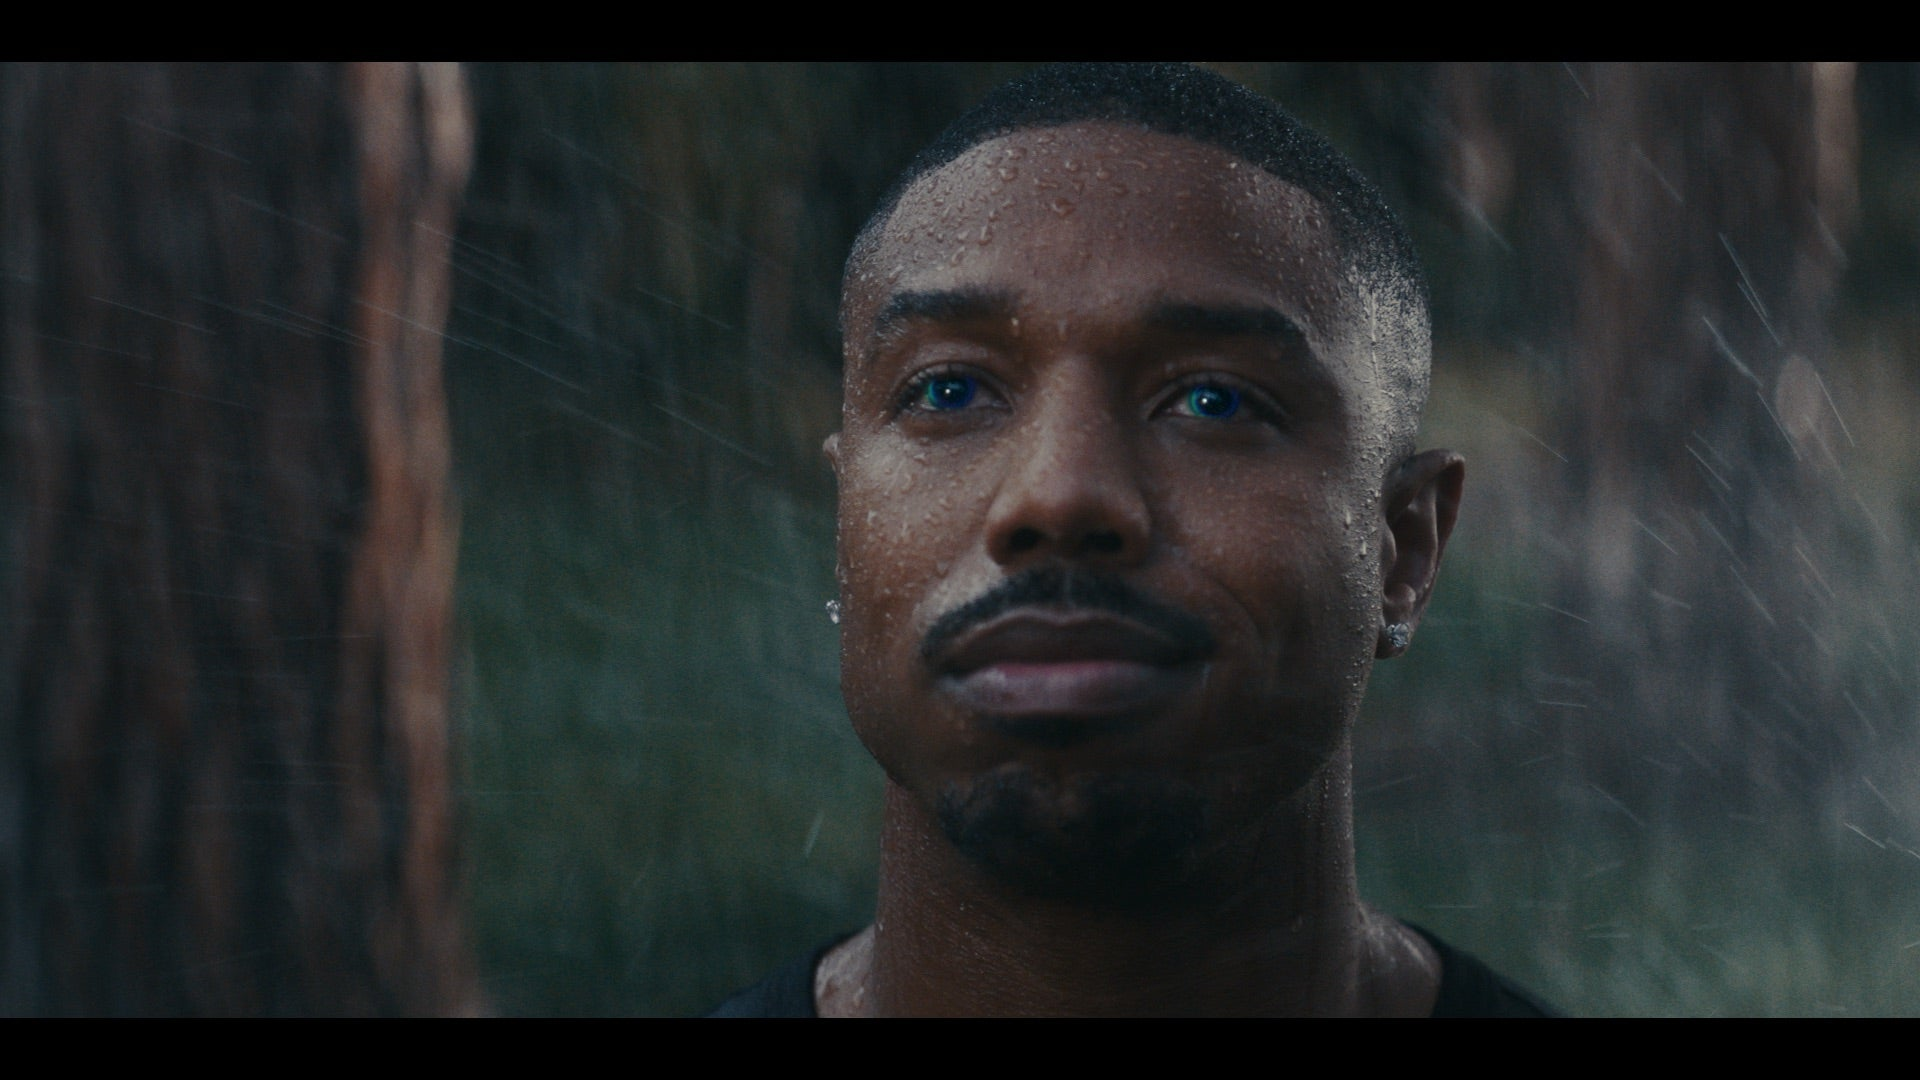 Michael B. Jordan plays a role in Amazon's Sexy Superbowl Commercial